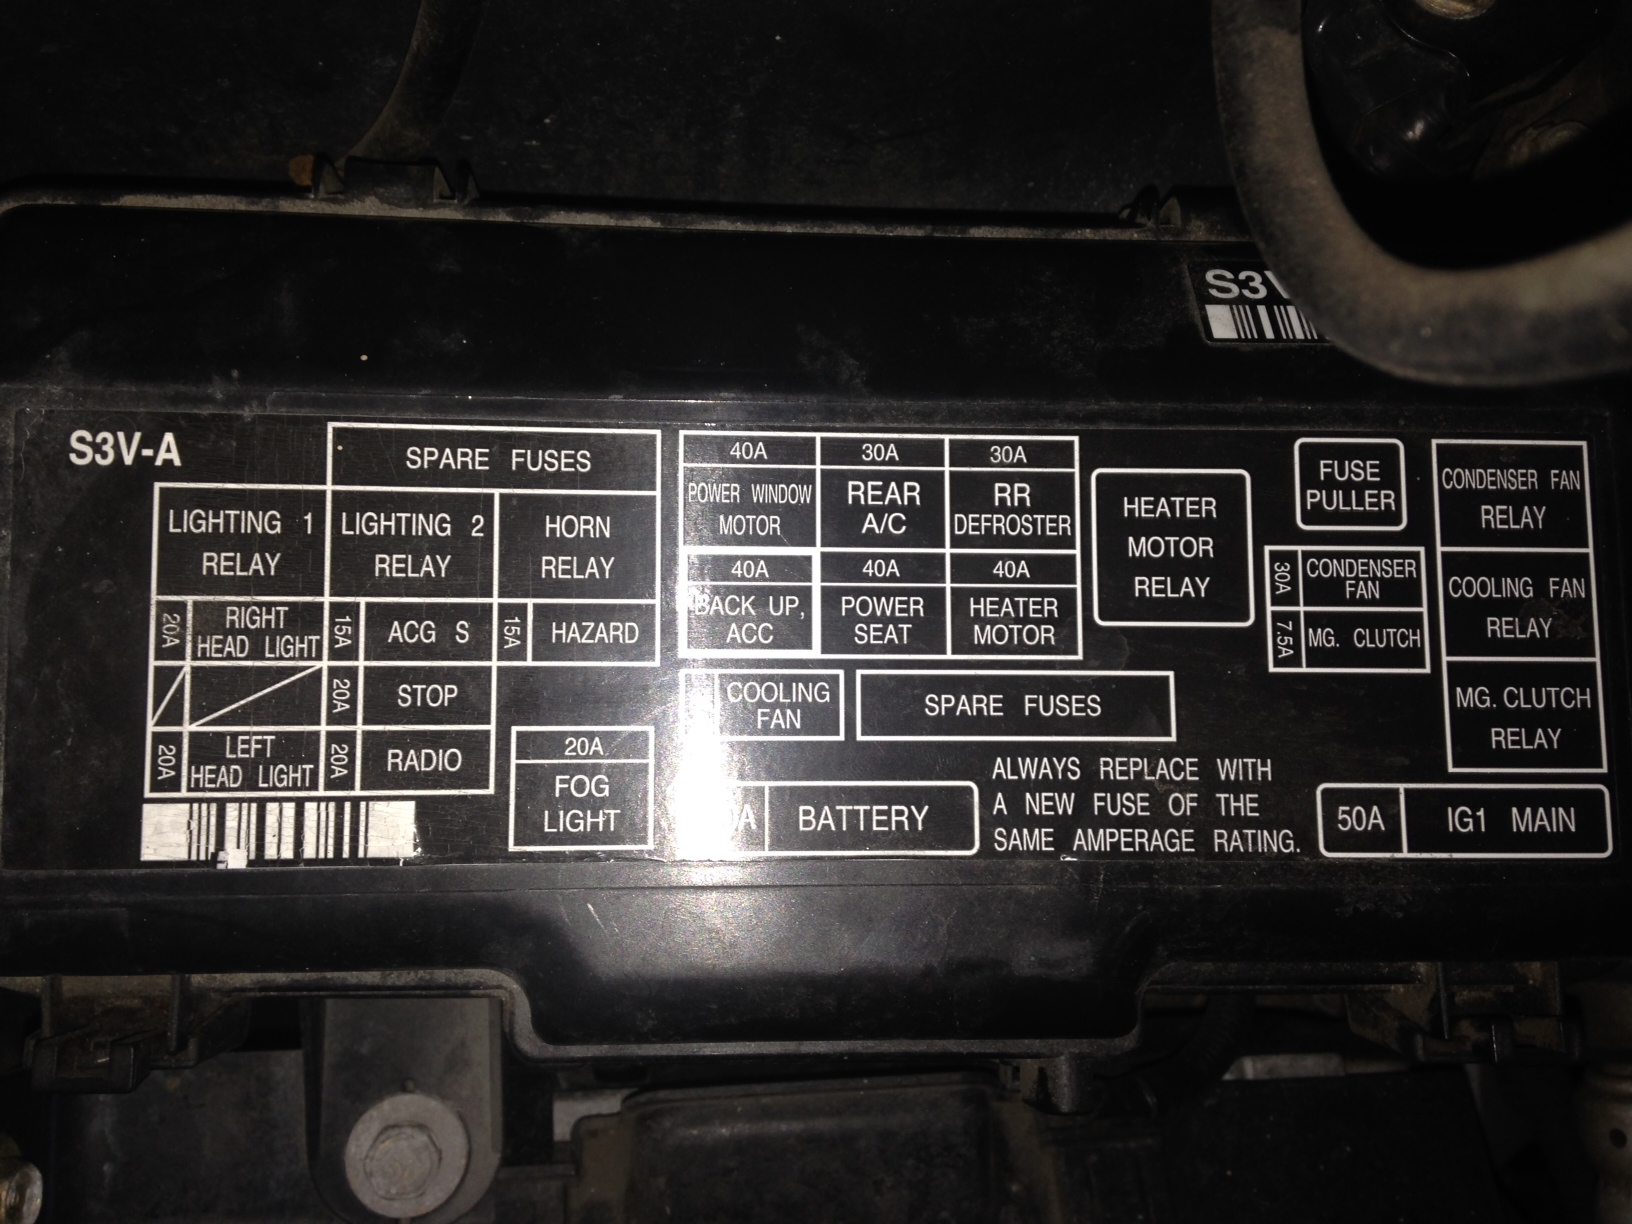 57817d1394638223 ac compressor relay picture photo which is ac compressor relay picture acura mdx forum acura acura mdx 2004 fuse box at bayanpartner.co